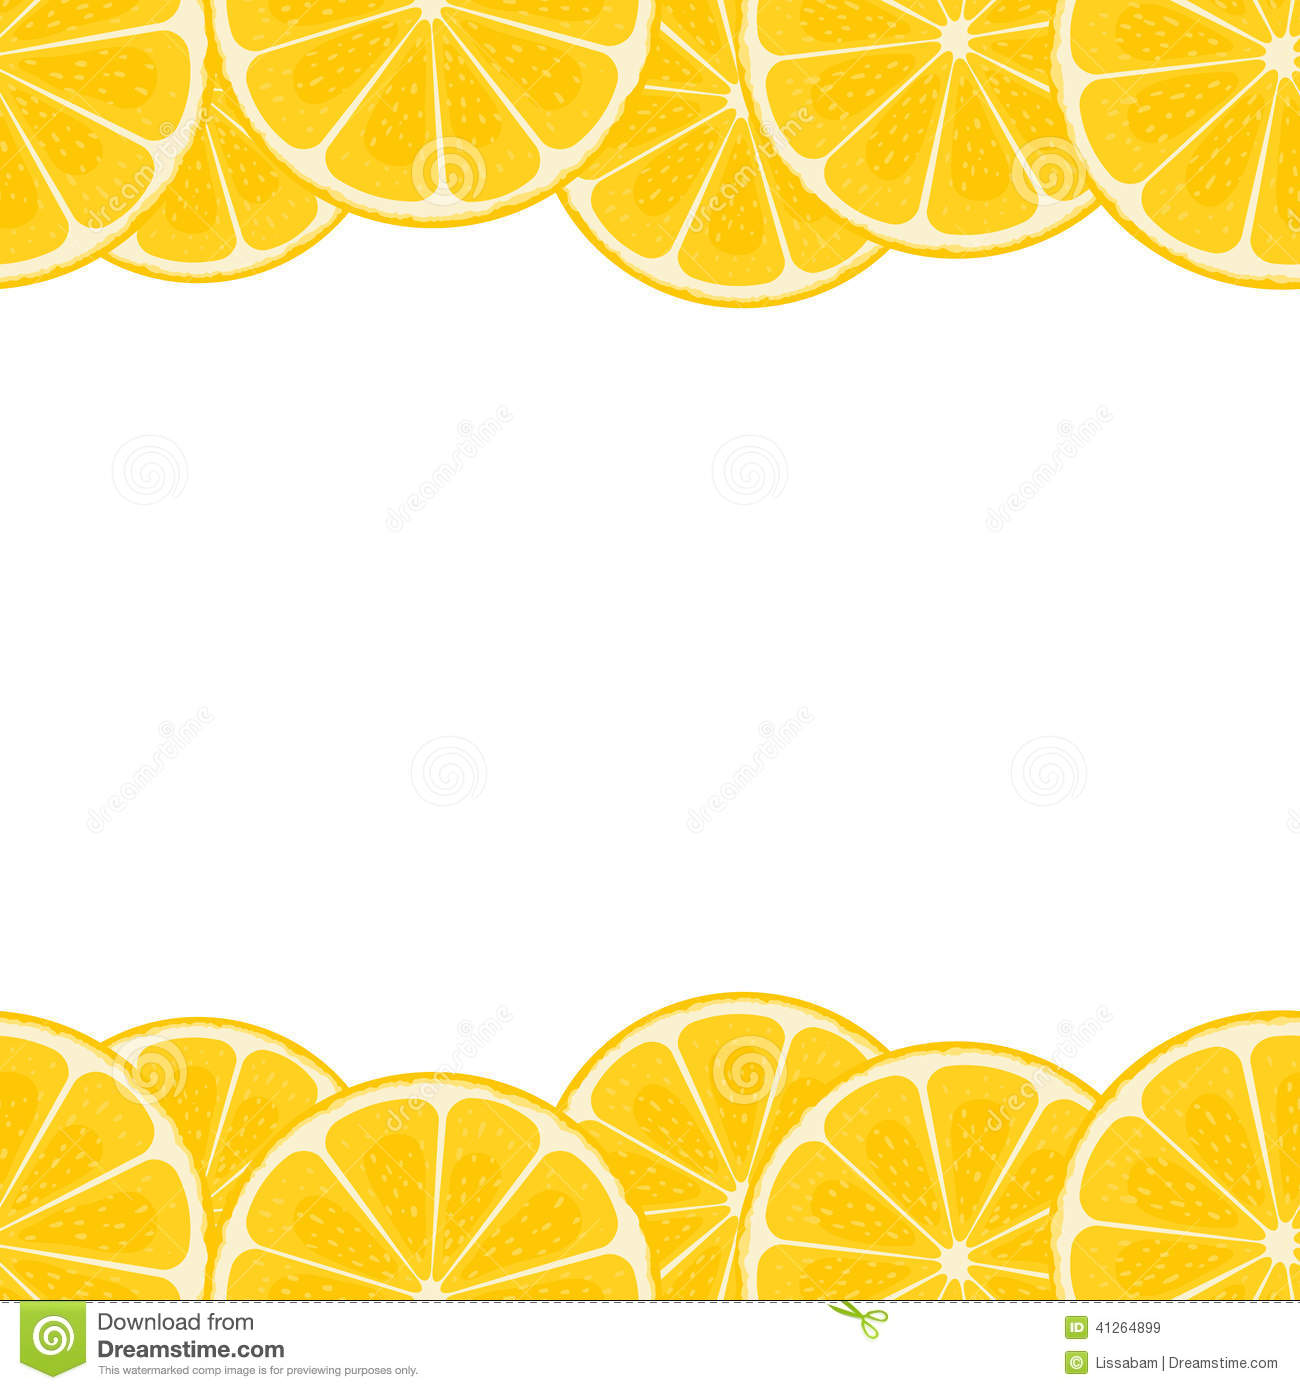 Lemon Border Stock Vector - Image: 41264899